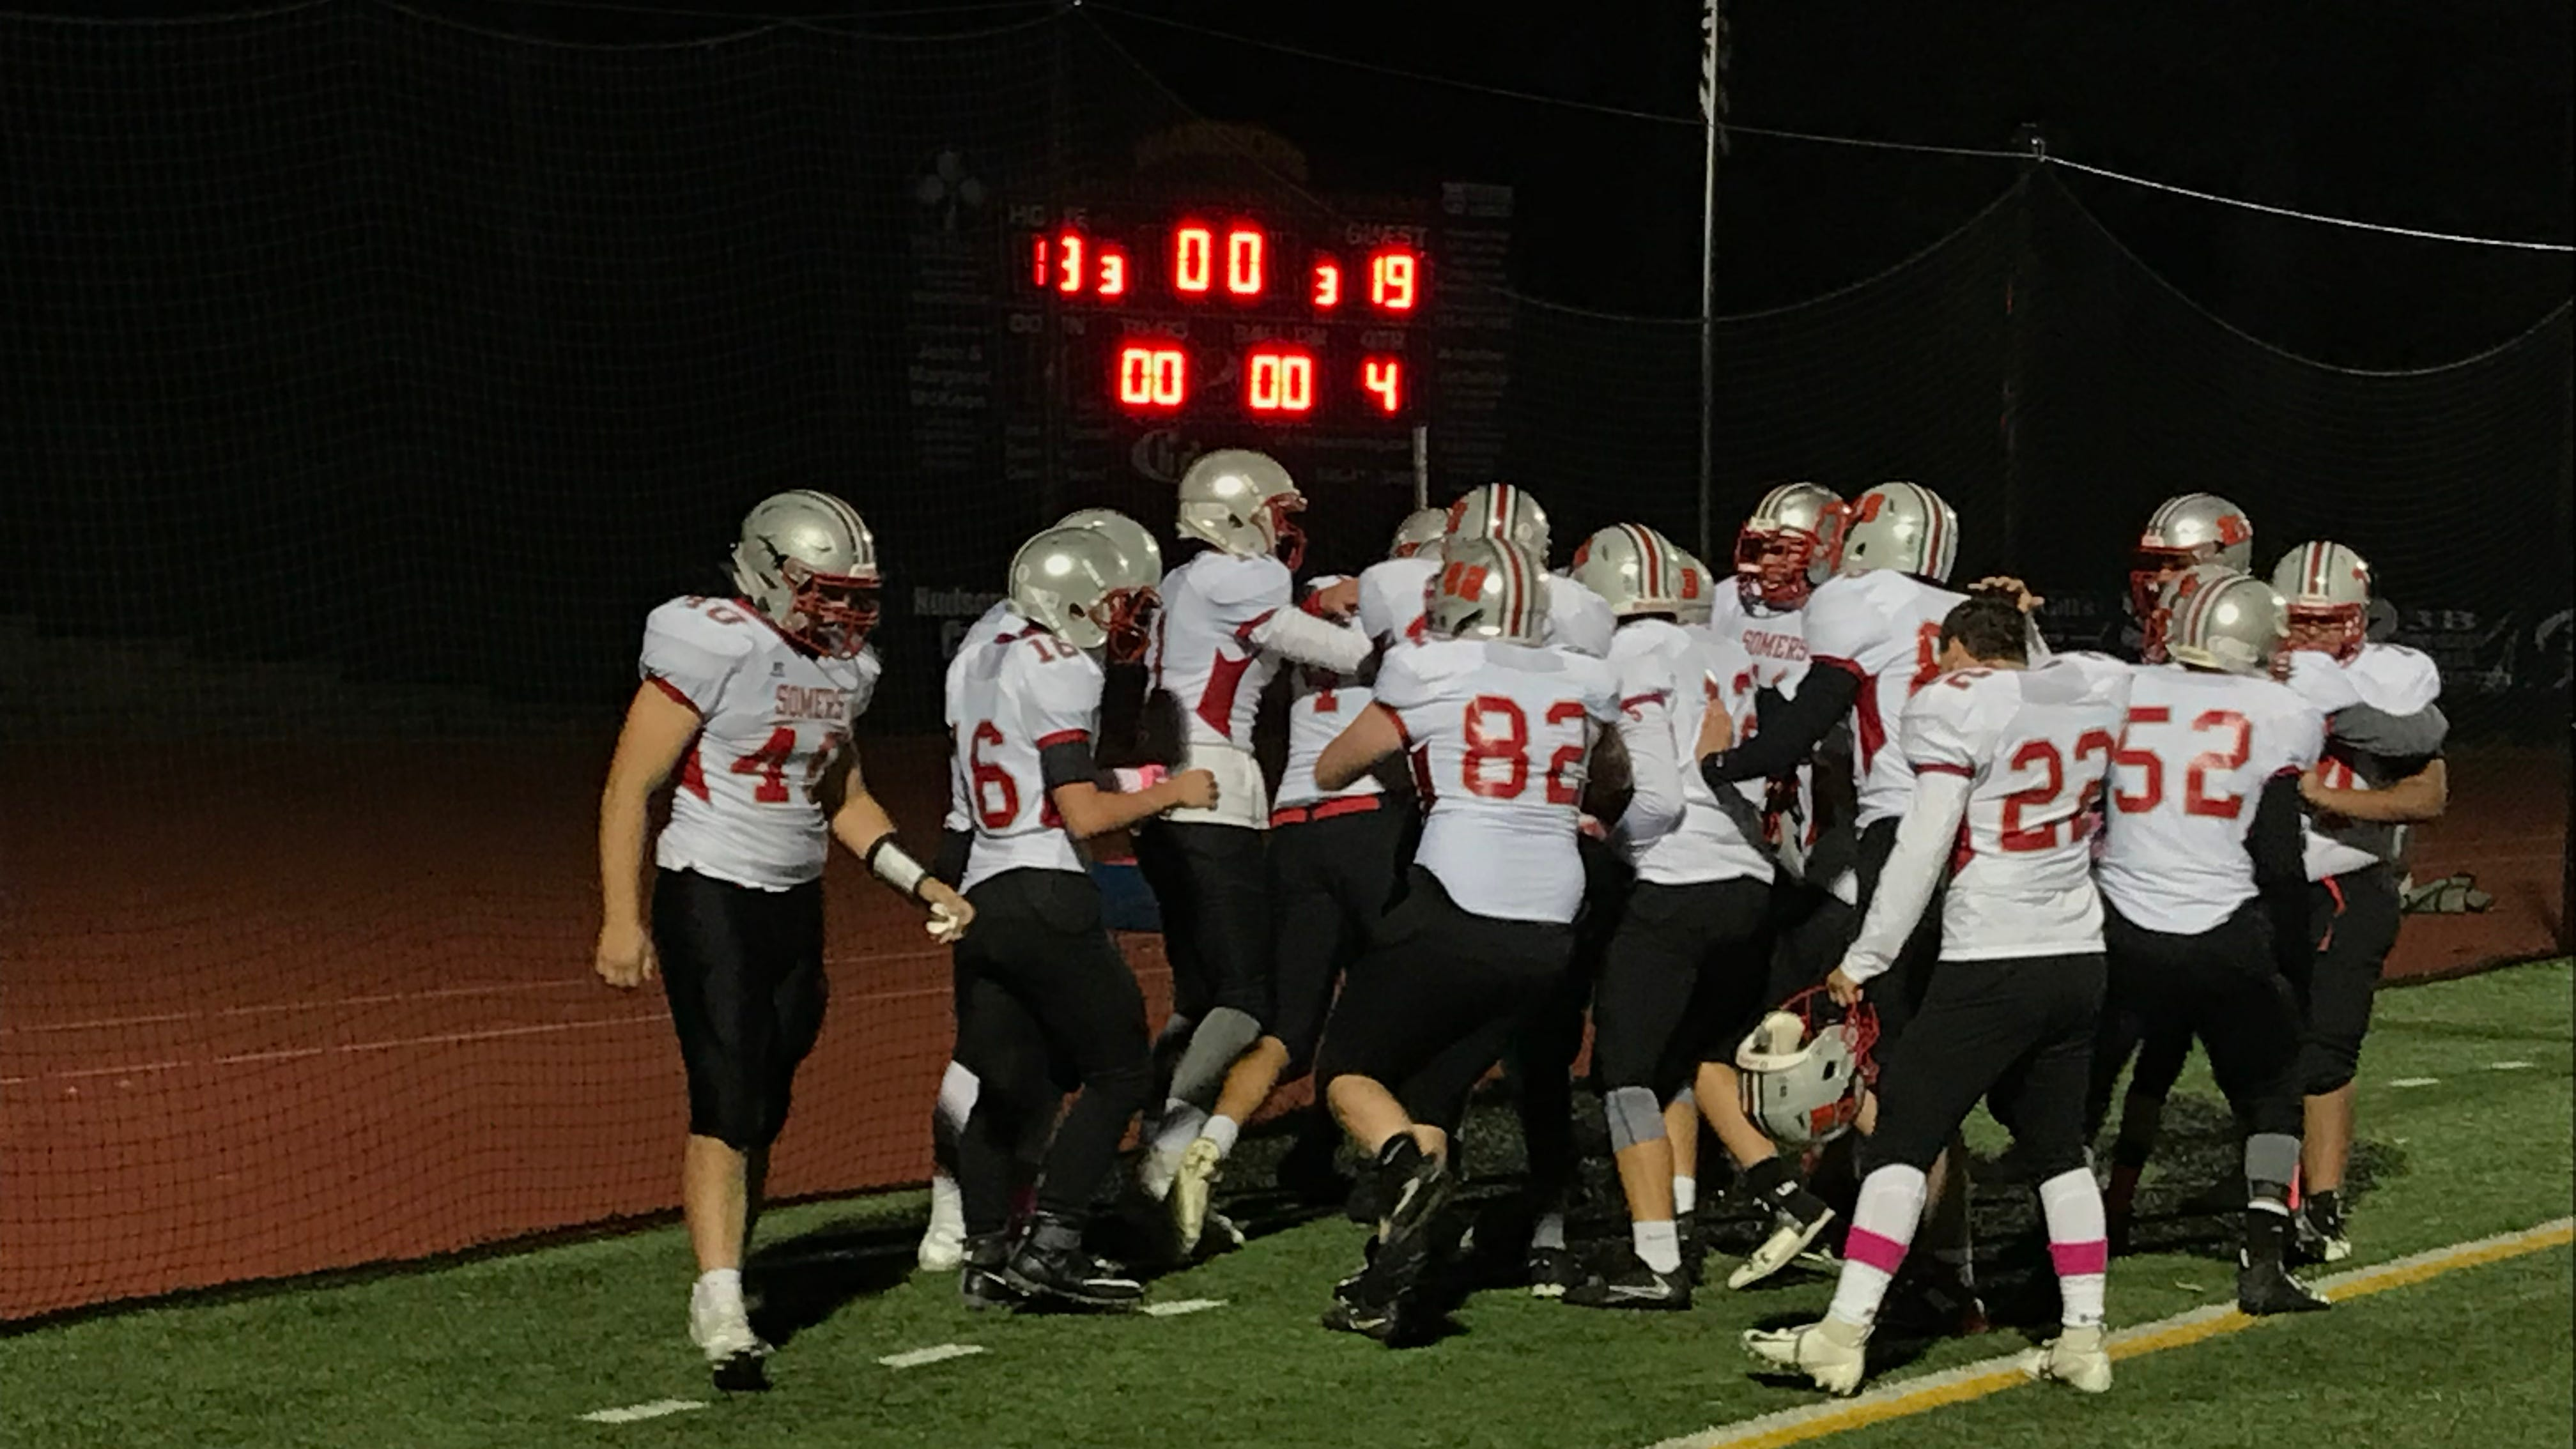 Members of the Somers High School football team swarm Lucas Fedele after he made the game-winning catch to defeat Our Lady of Lourdes on Friday.